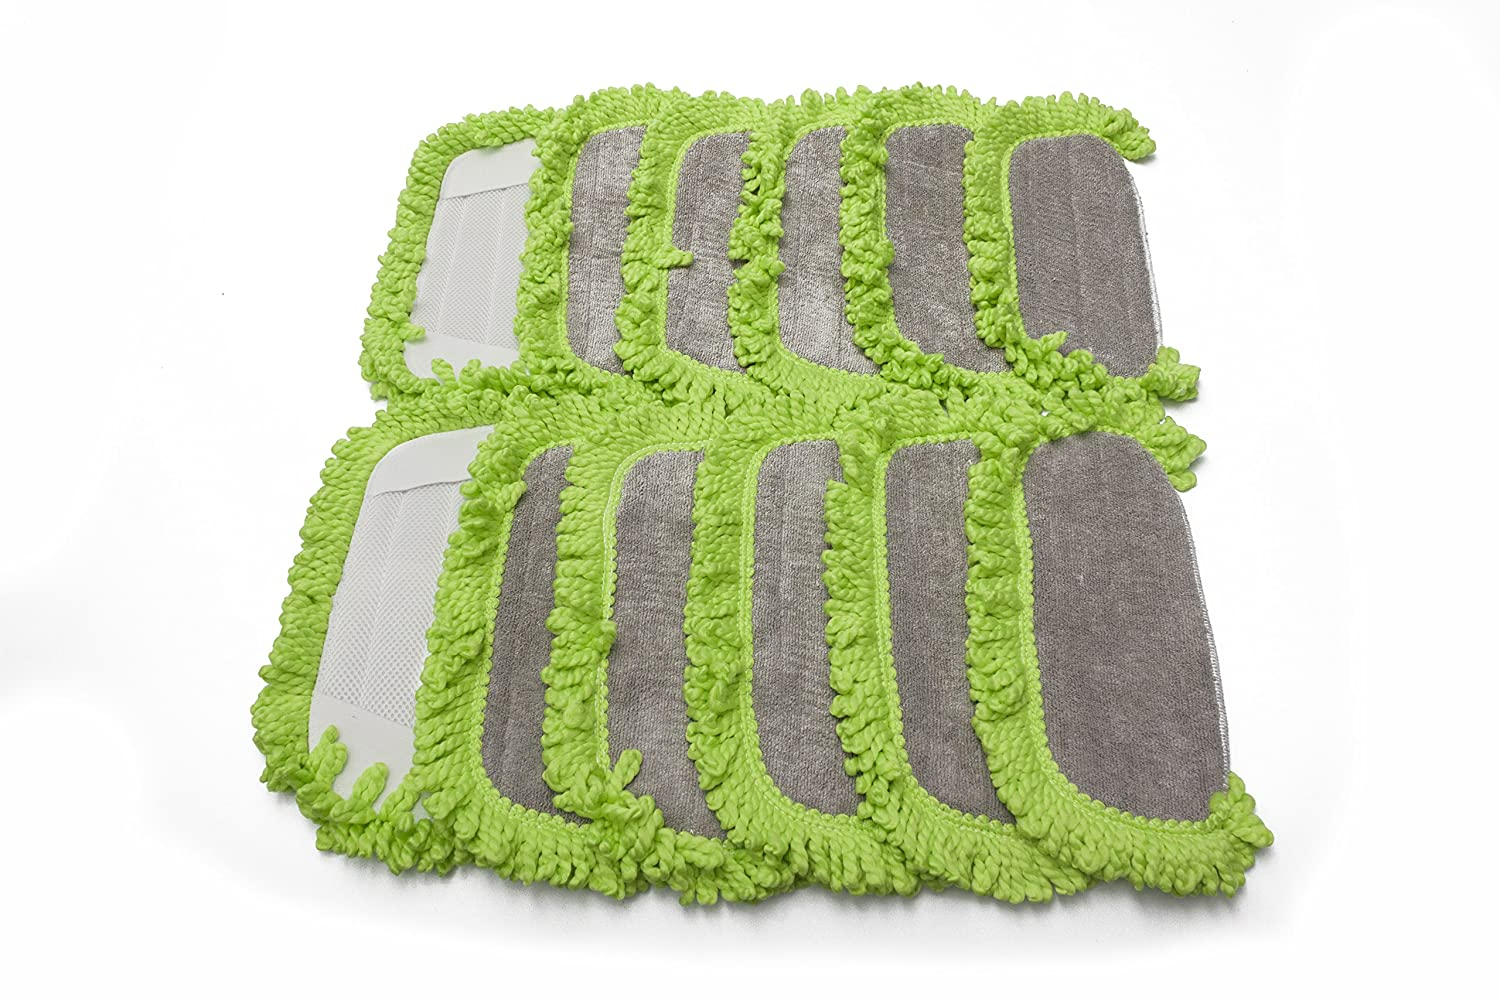 LTWHOME Washable Microfiber Replacement Pads Fit for Dirt Devil Vac, Compare to Part AD51005 (Pack of 12) Ltd.